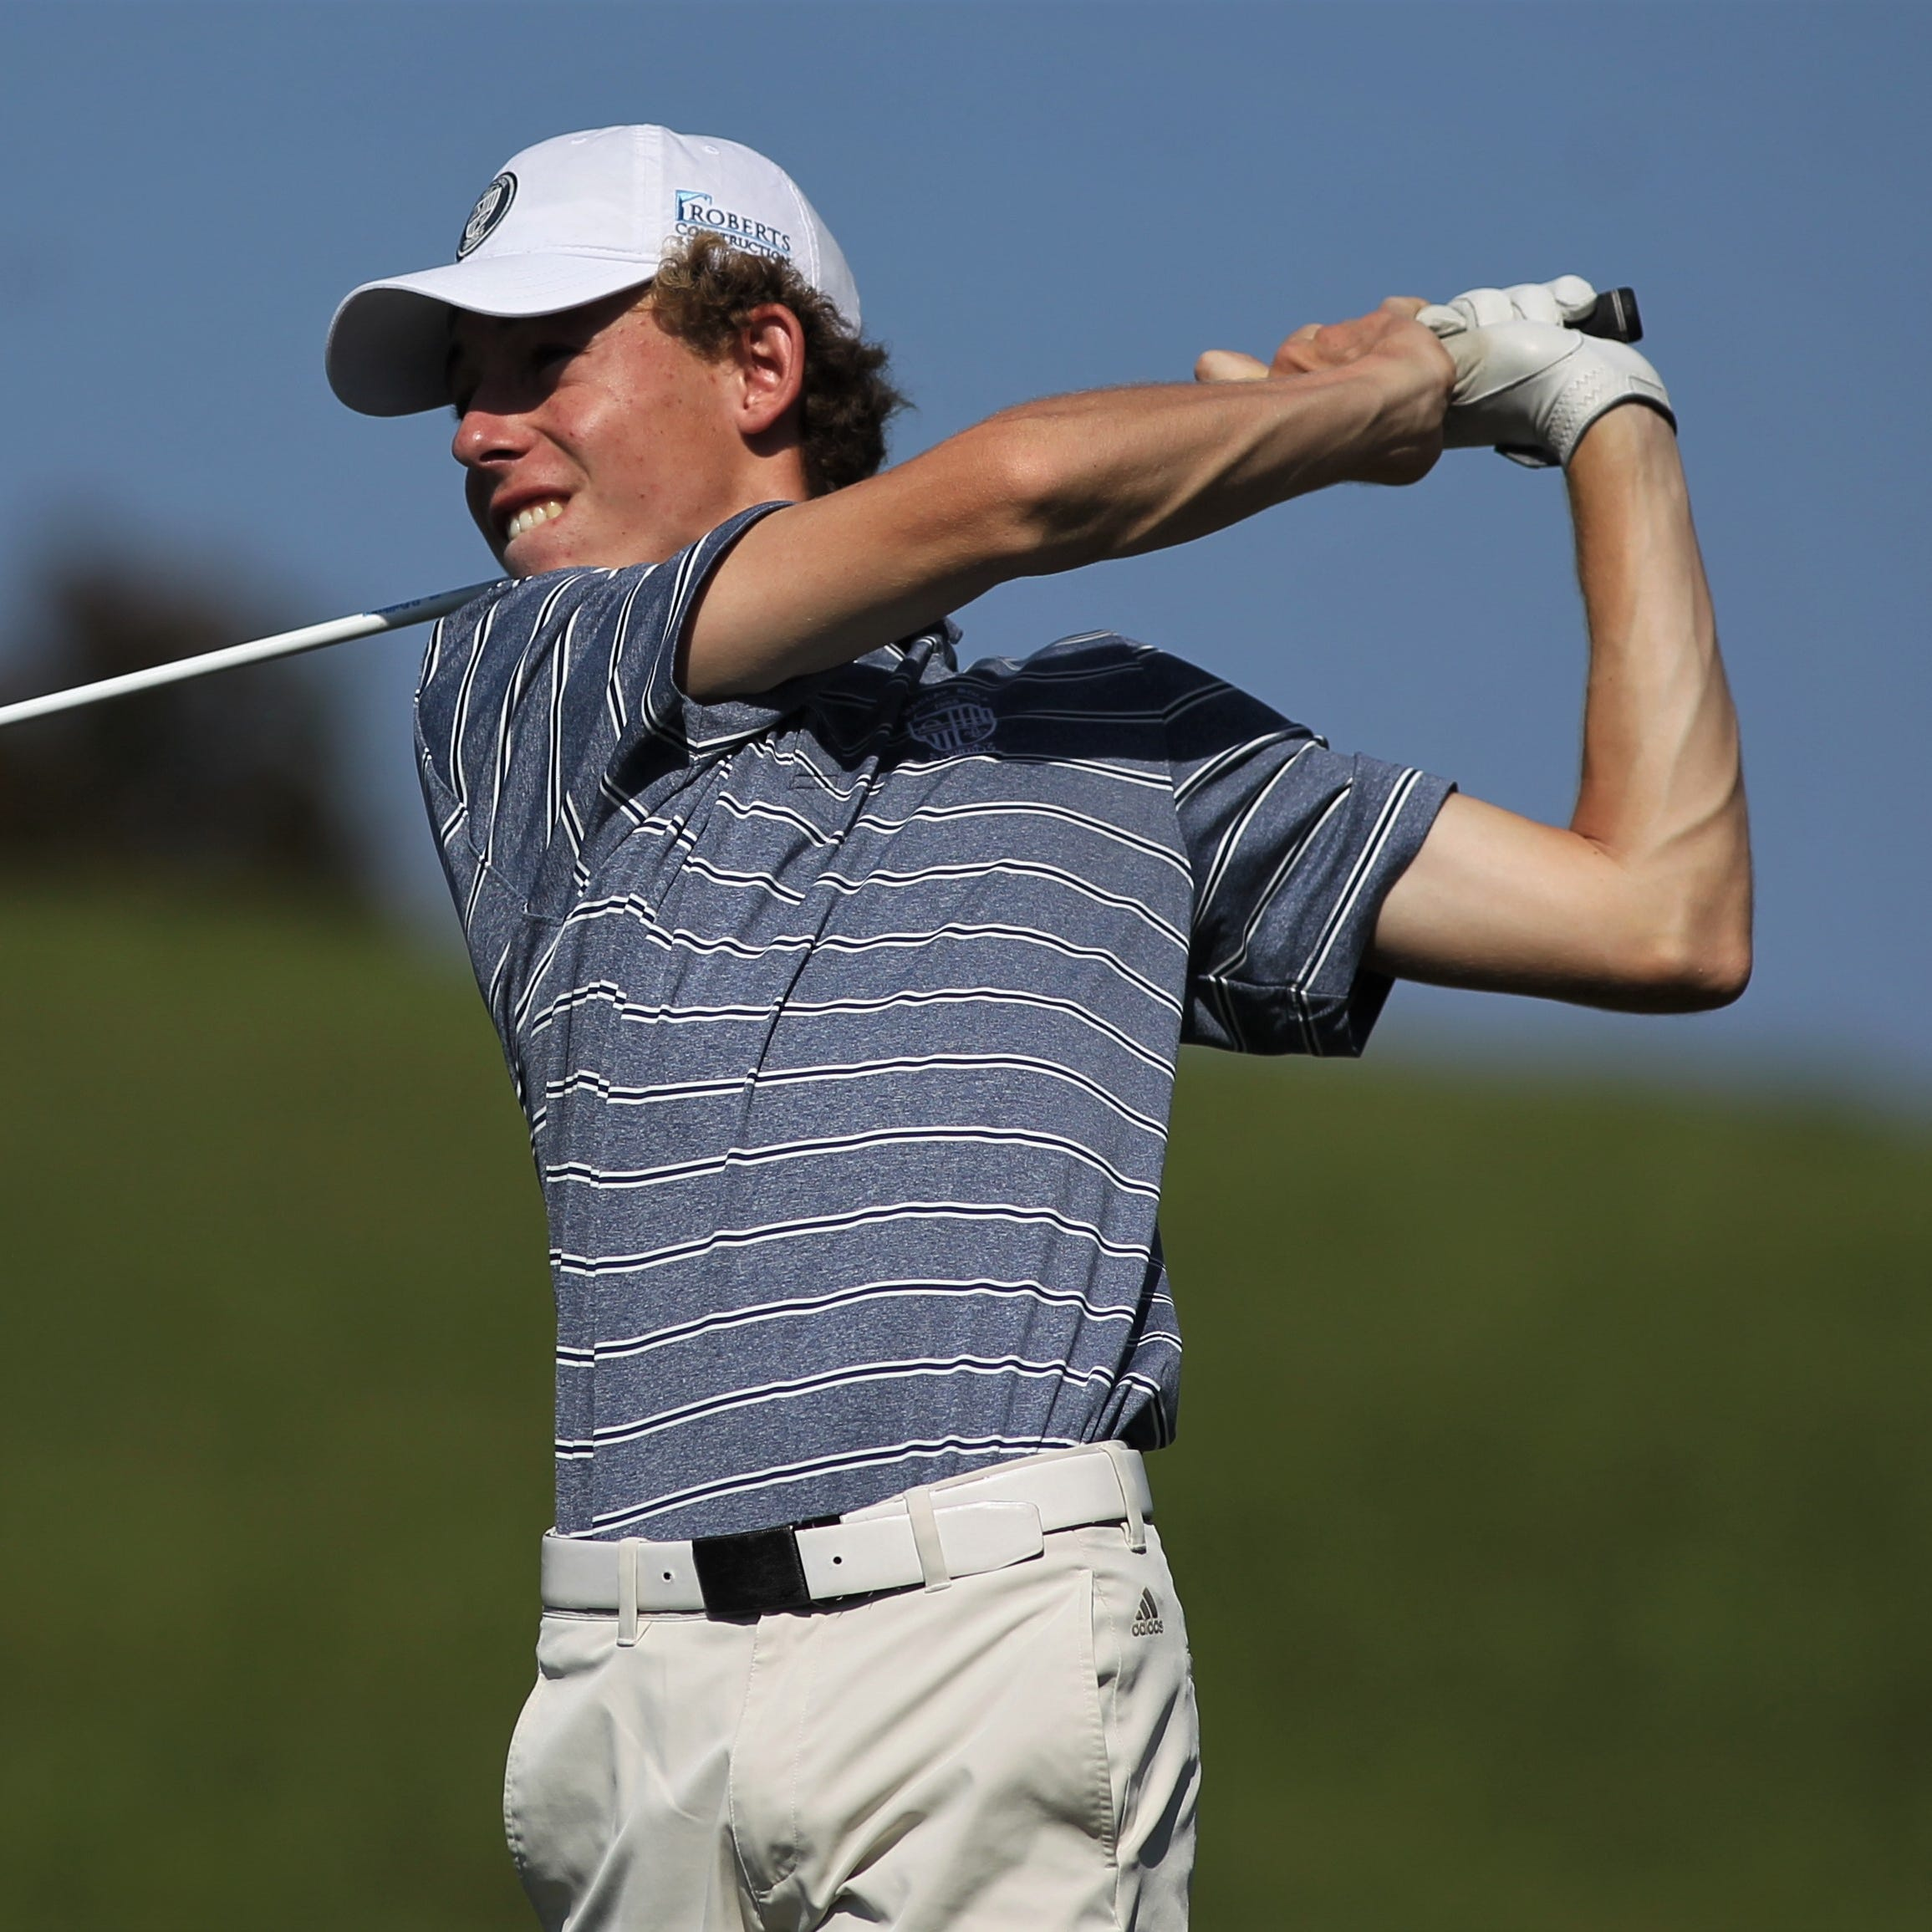 Maclay senior Cole Miller shot a 1-over par 73 during Thursday's District 1-1A title at Southwood Golf Club, good enough for a two-stroke victory.